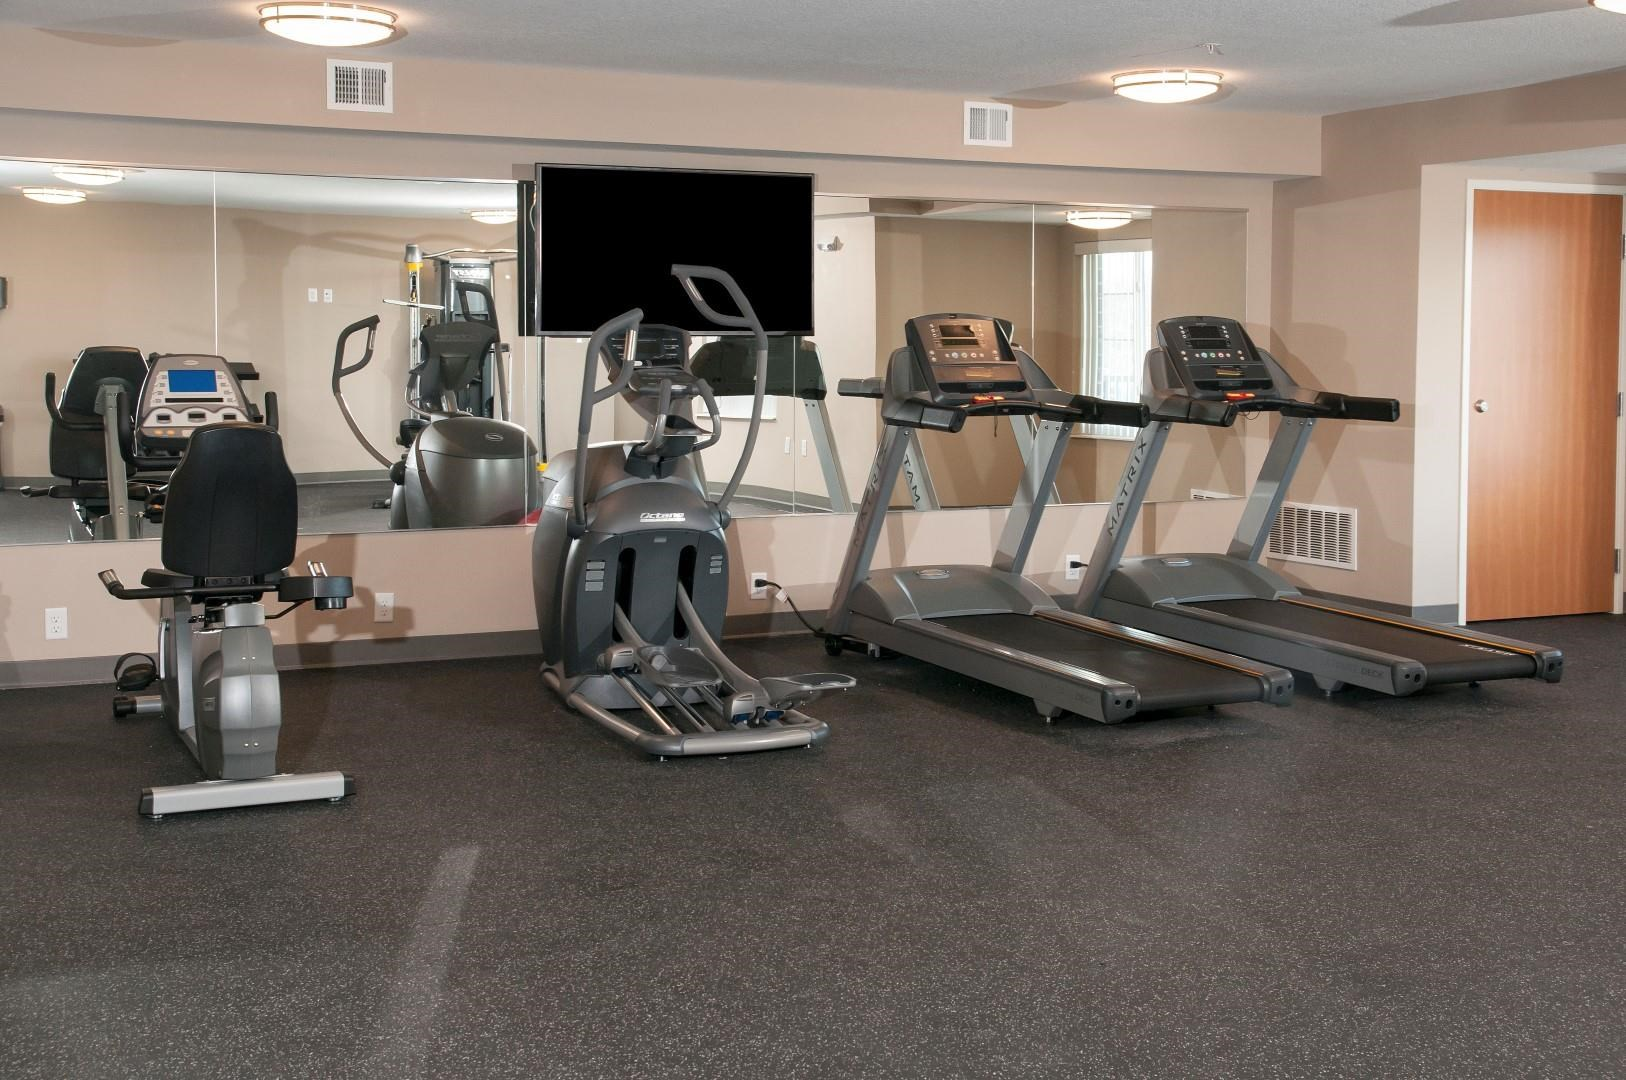 Carver Crossing Fitness Room with Bike, Elliptical and Treadmill Machines